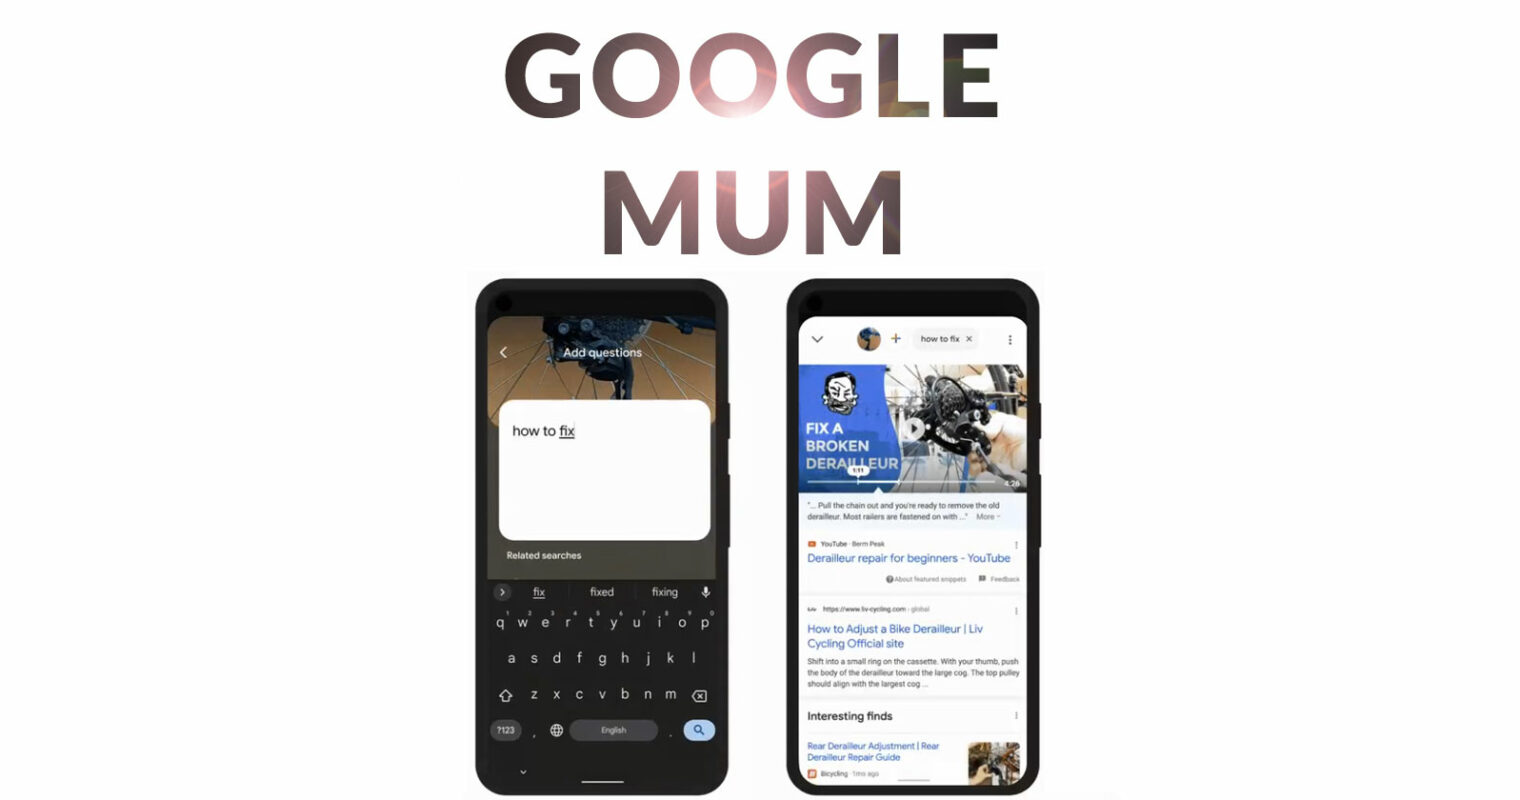 Google MUM is Coming to Lens